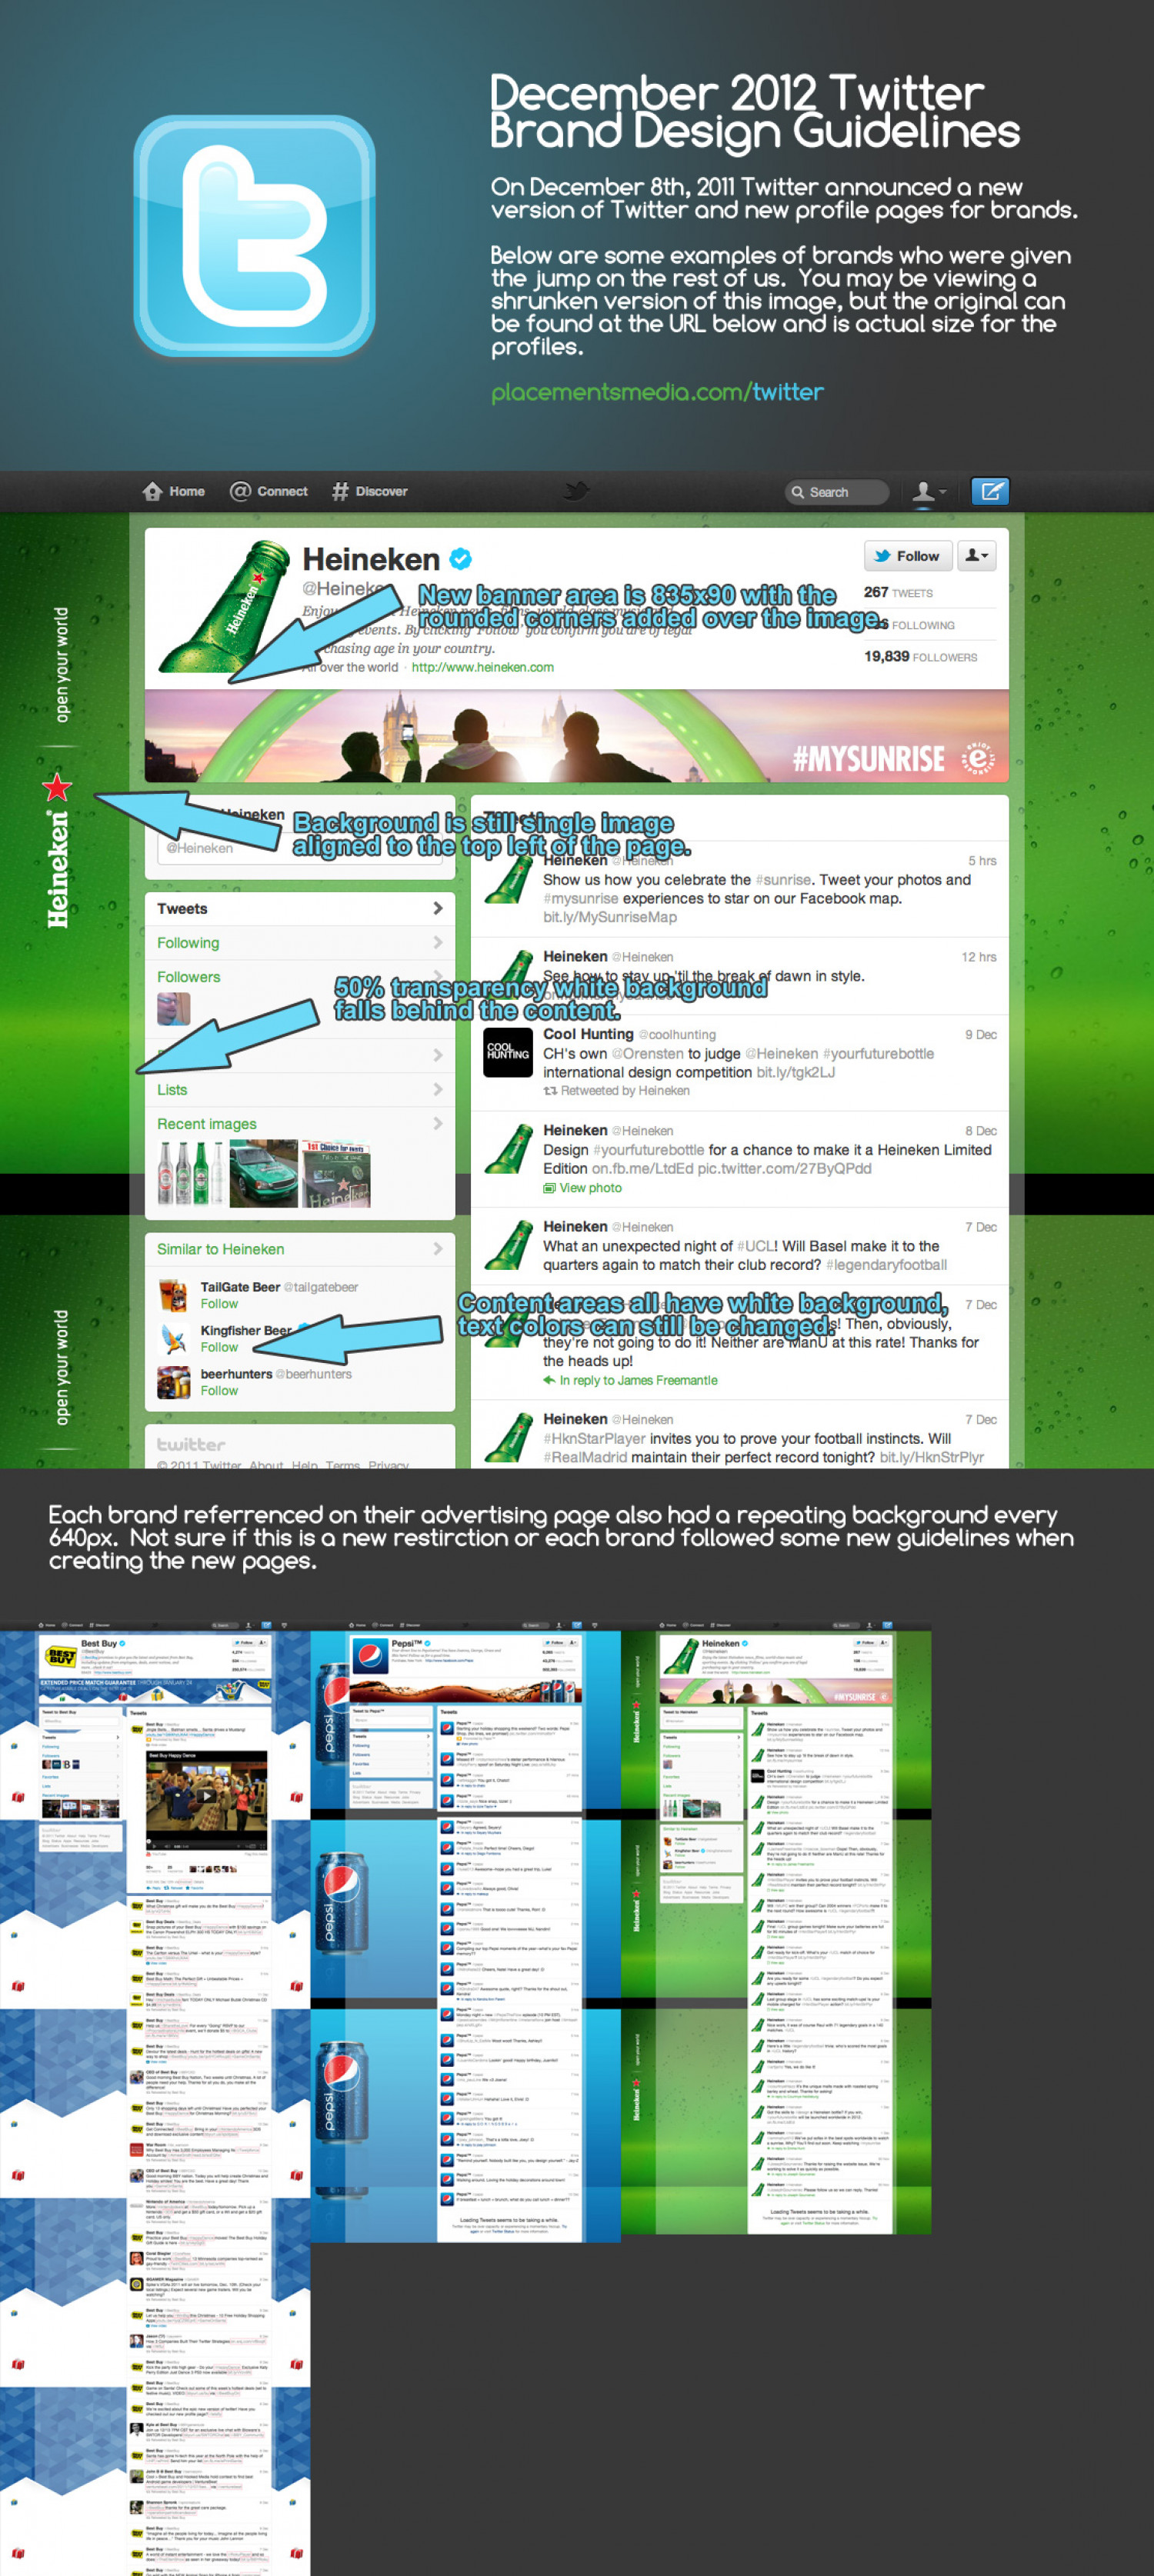 December 2012 Twitter Brand Design Guidelines Infographic